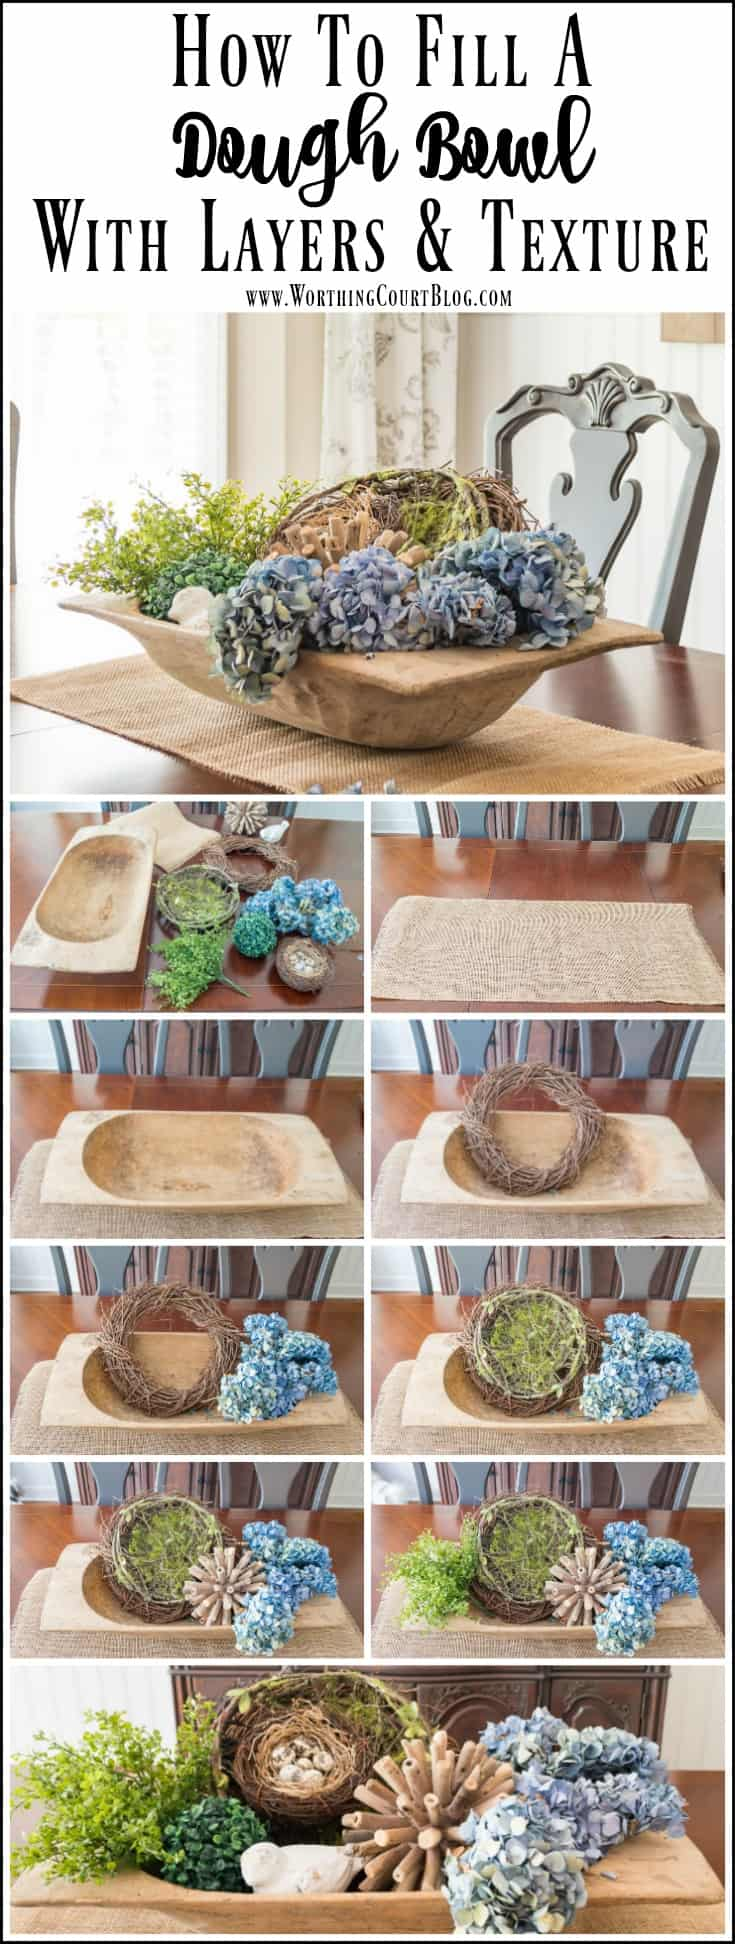 Step by step photos of how to create a seasonal dough bowl display